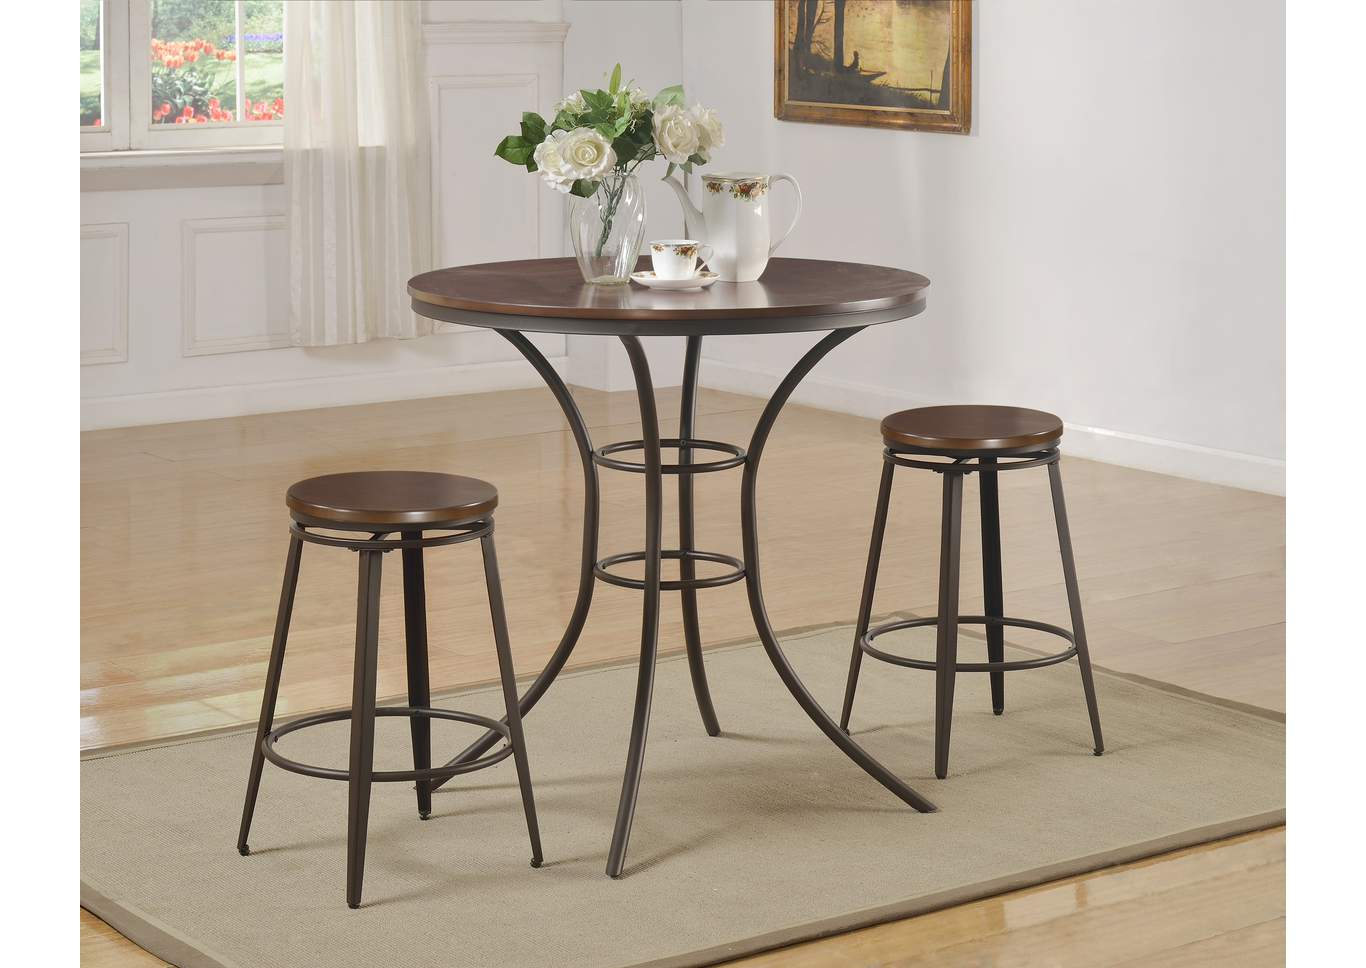 Kylie Counter Height Dining Room Table w/2 Swivel Stools,Crown Mark